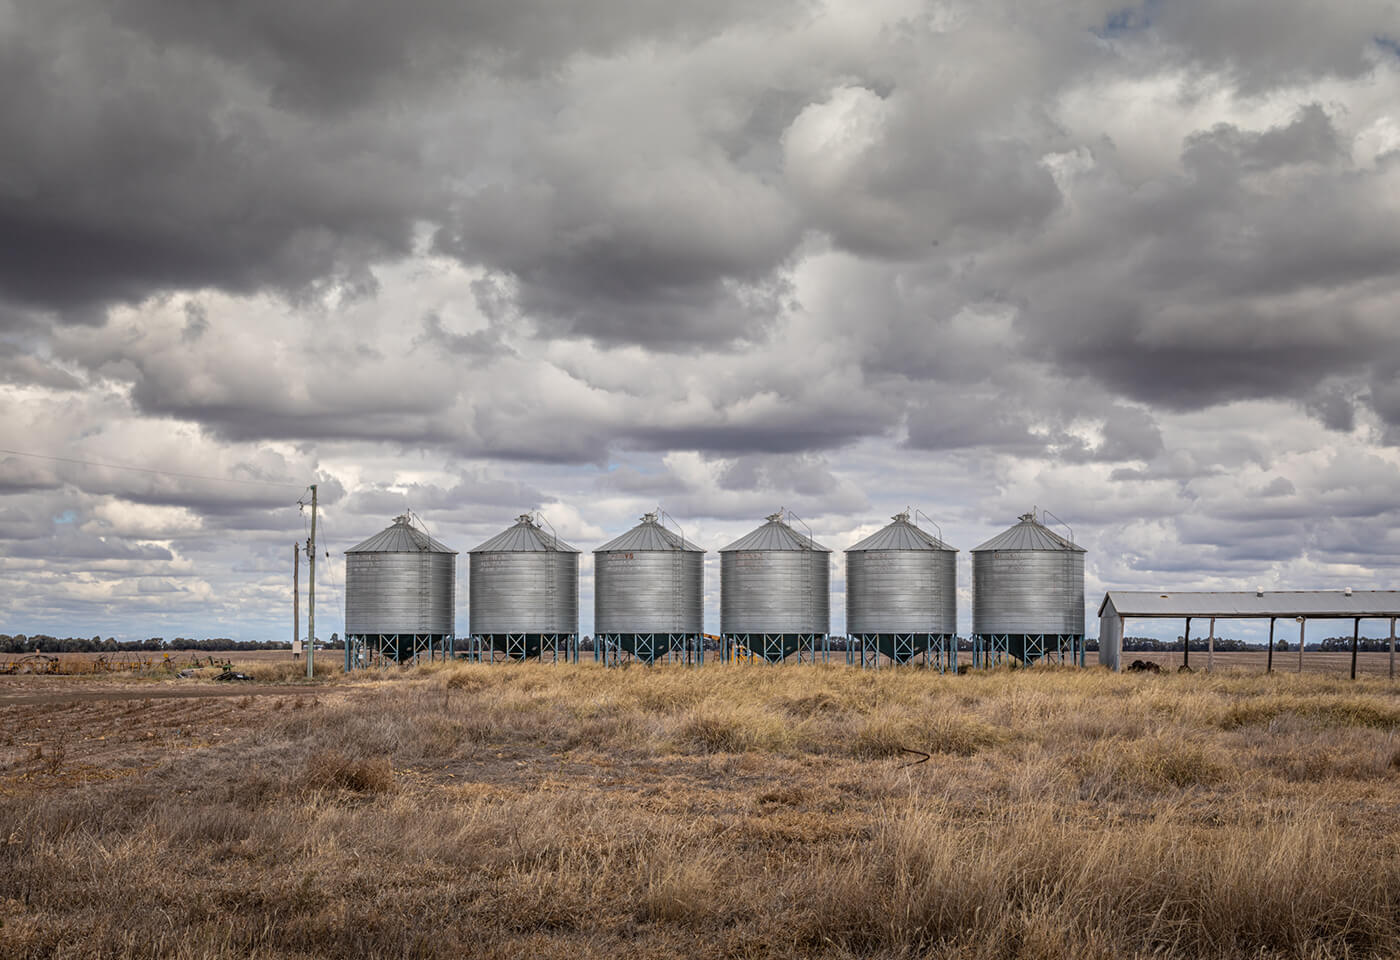 Water tanks in a farm by Greg Sullavan